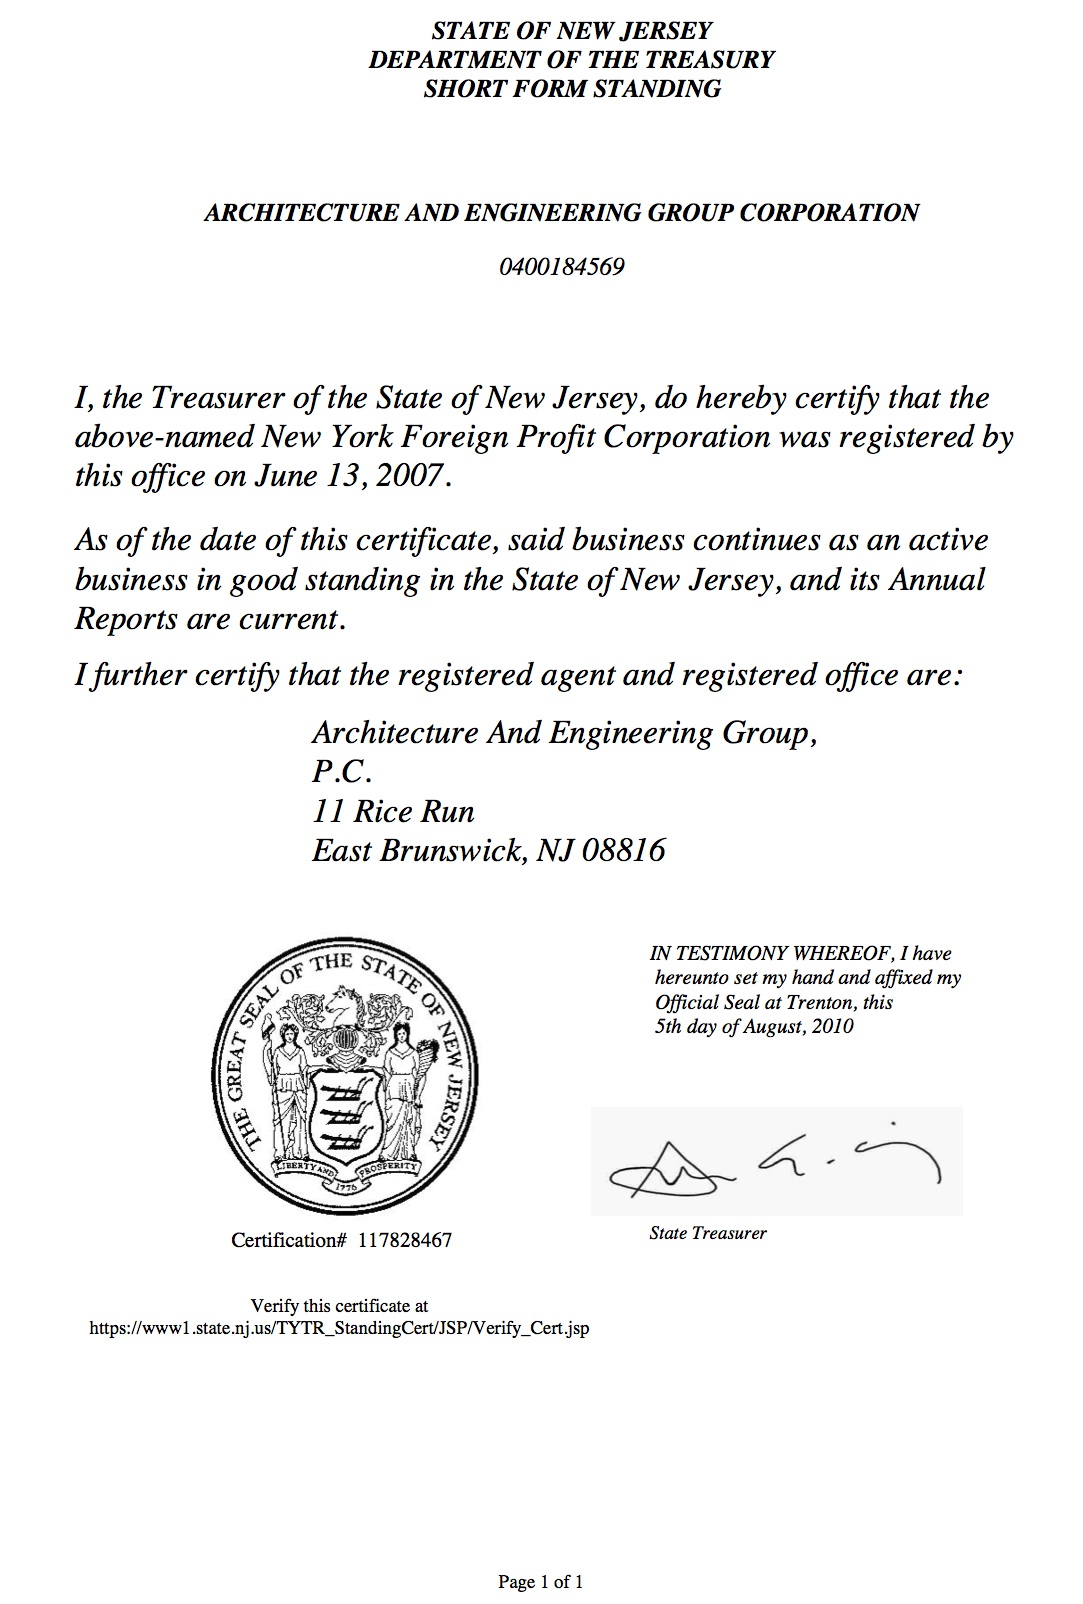 New Jersey Certificate of Authority